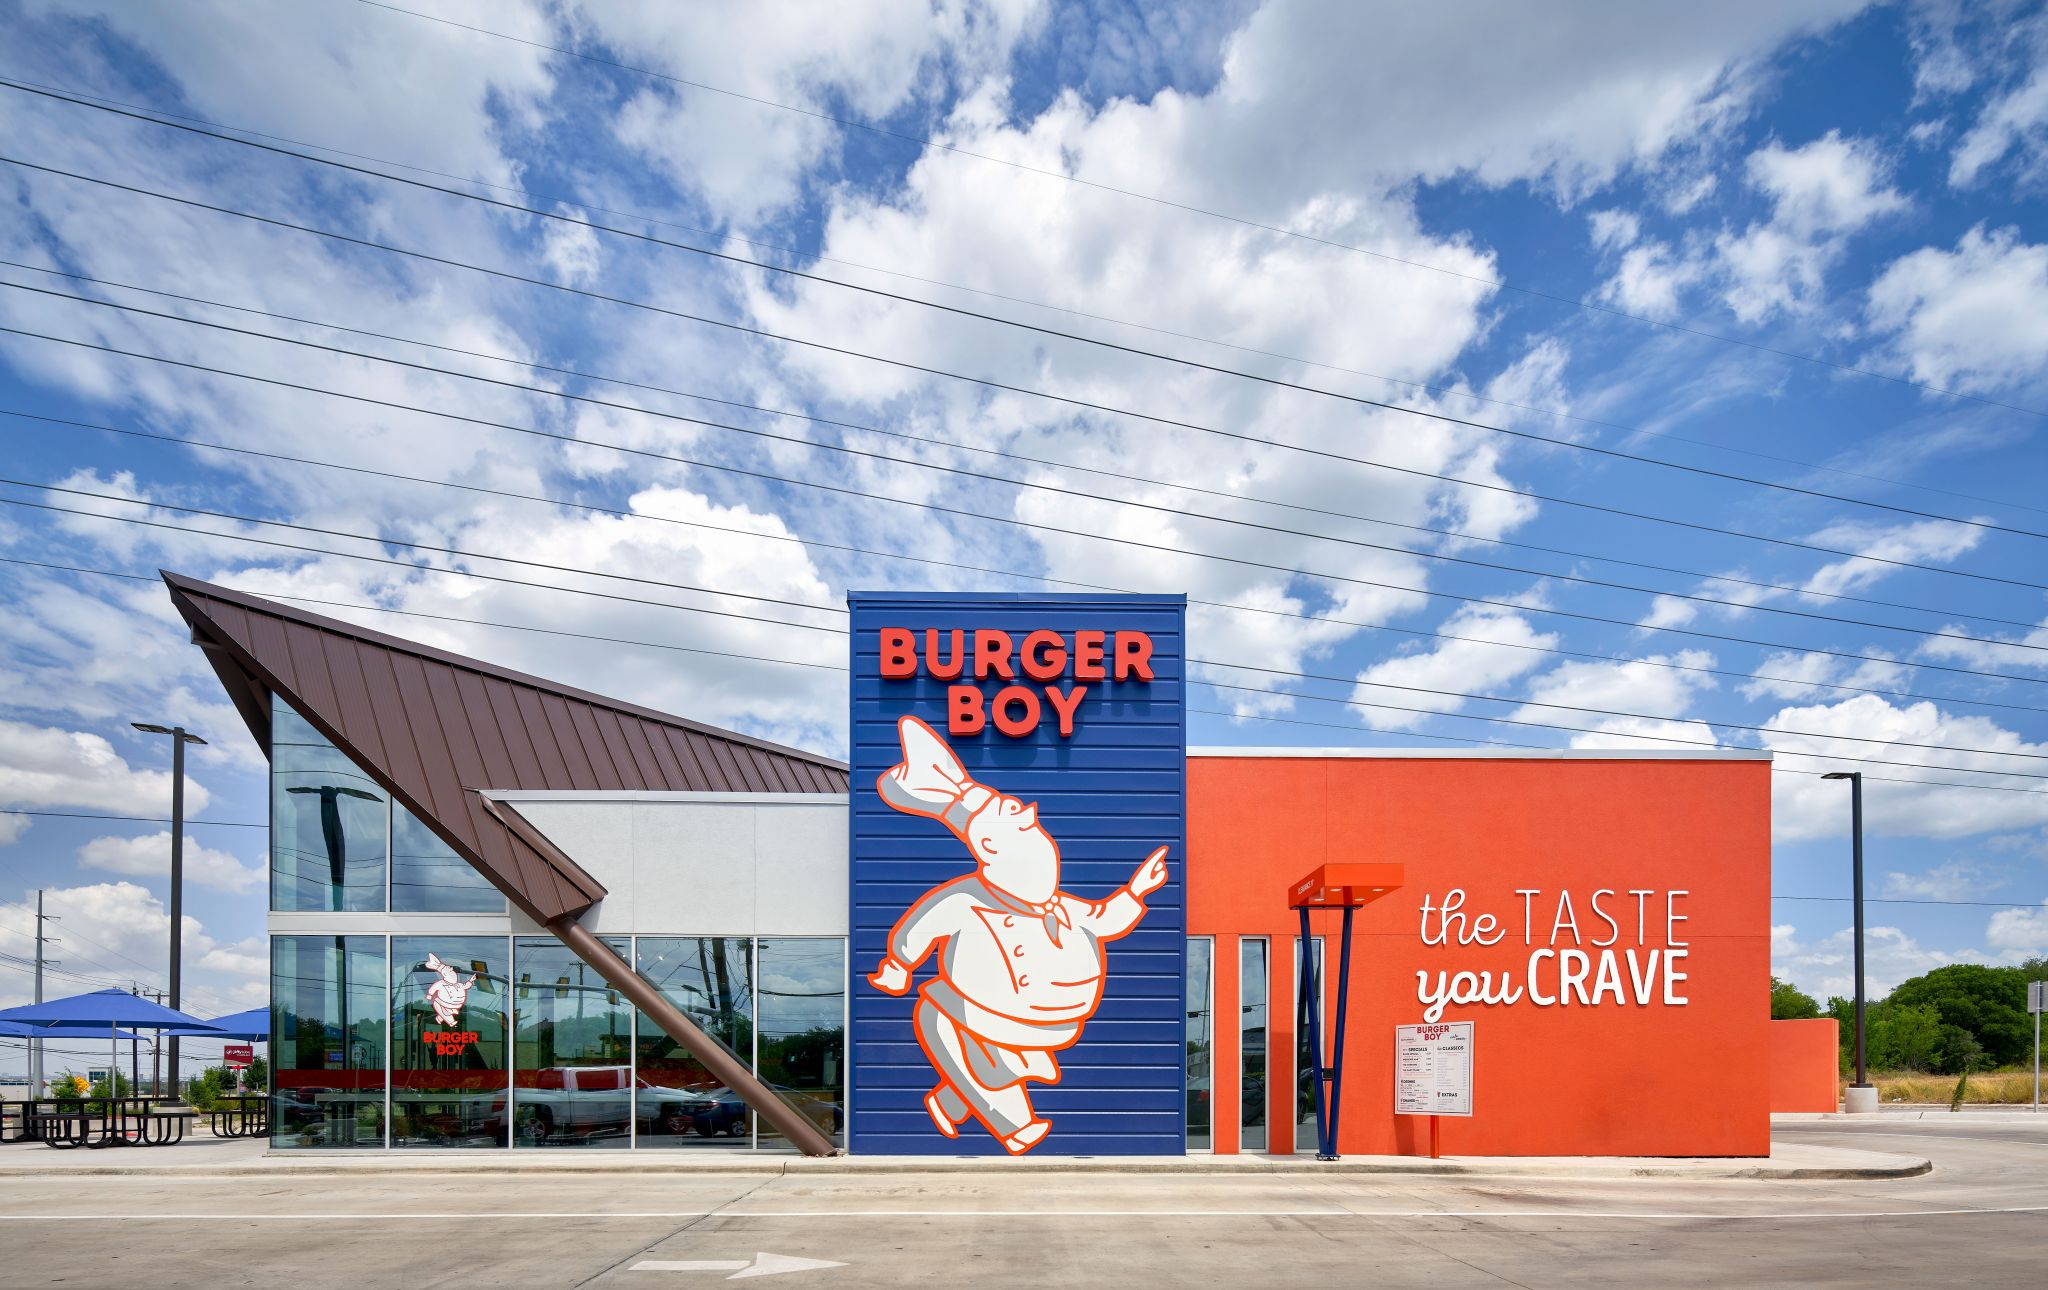 San Antonio S Burger Boy Wins National Design Award That S